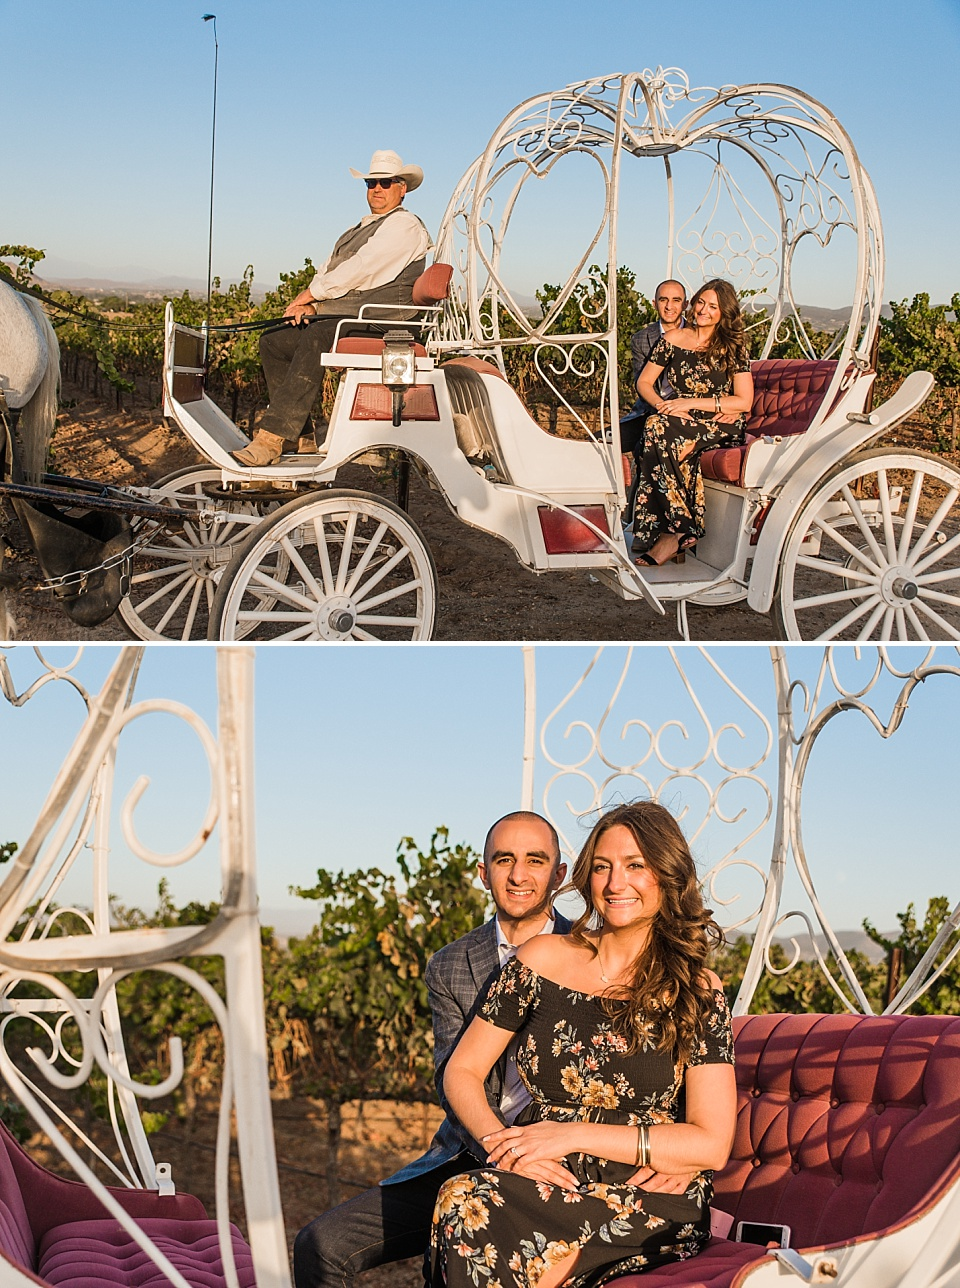 couple posing on carriage after marriage proposal with Temecula Carriage Co